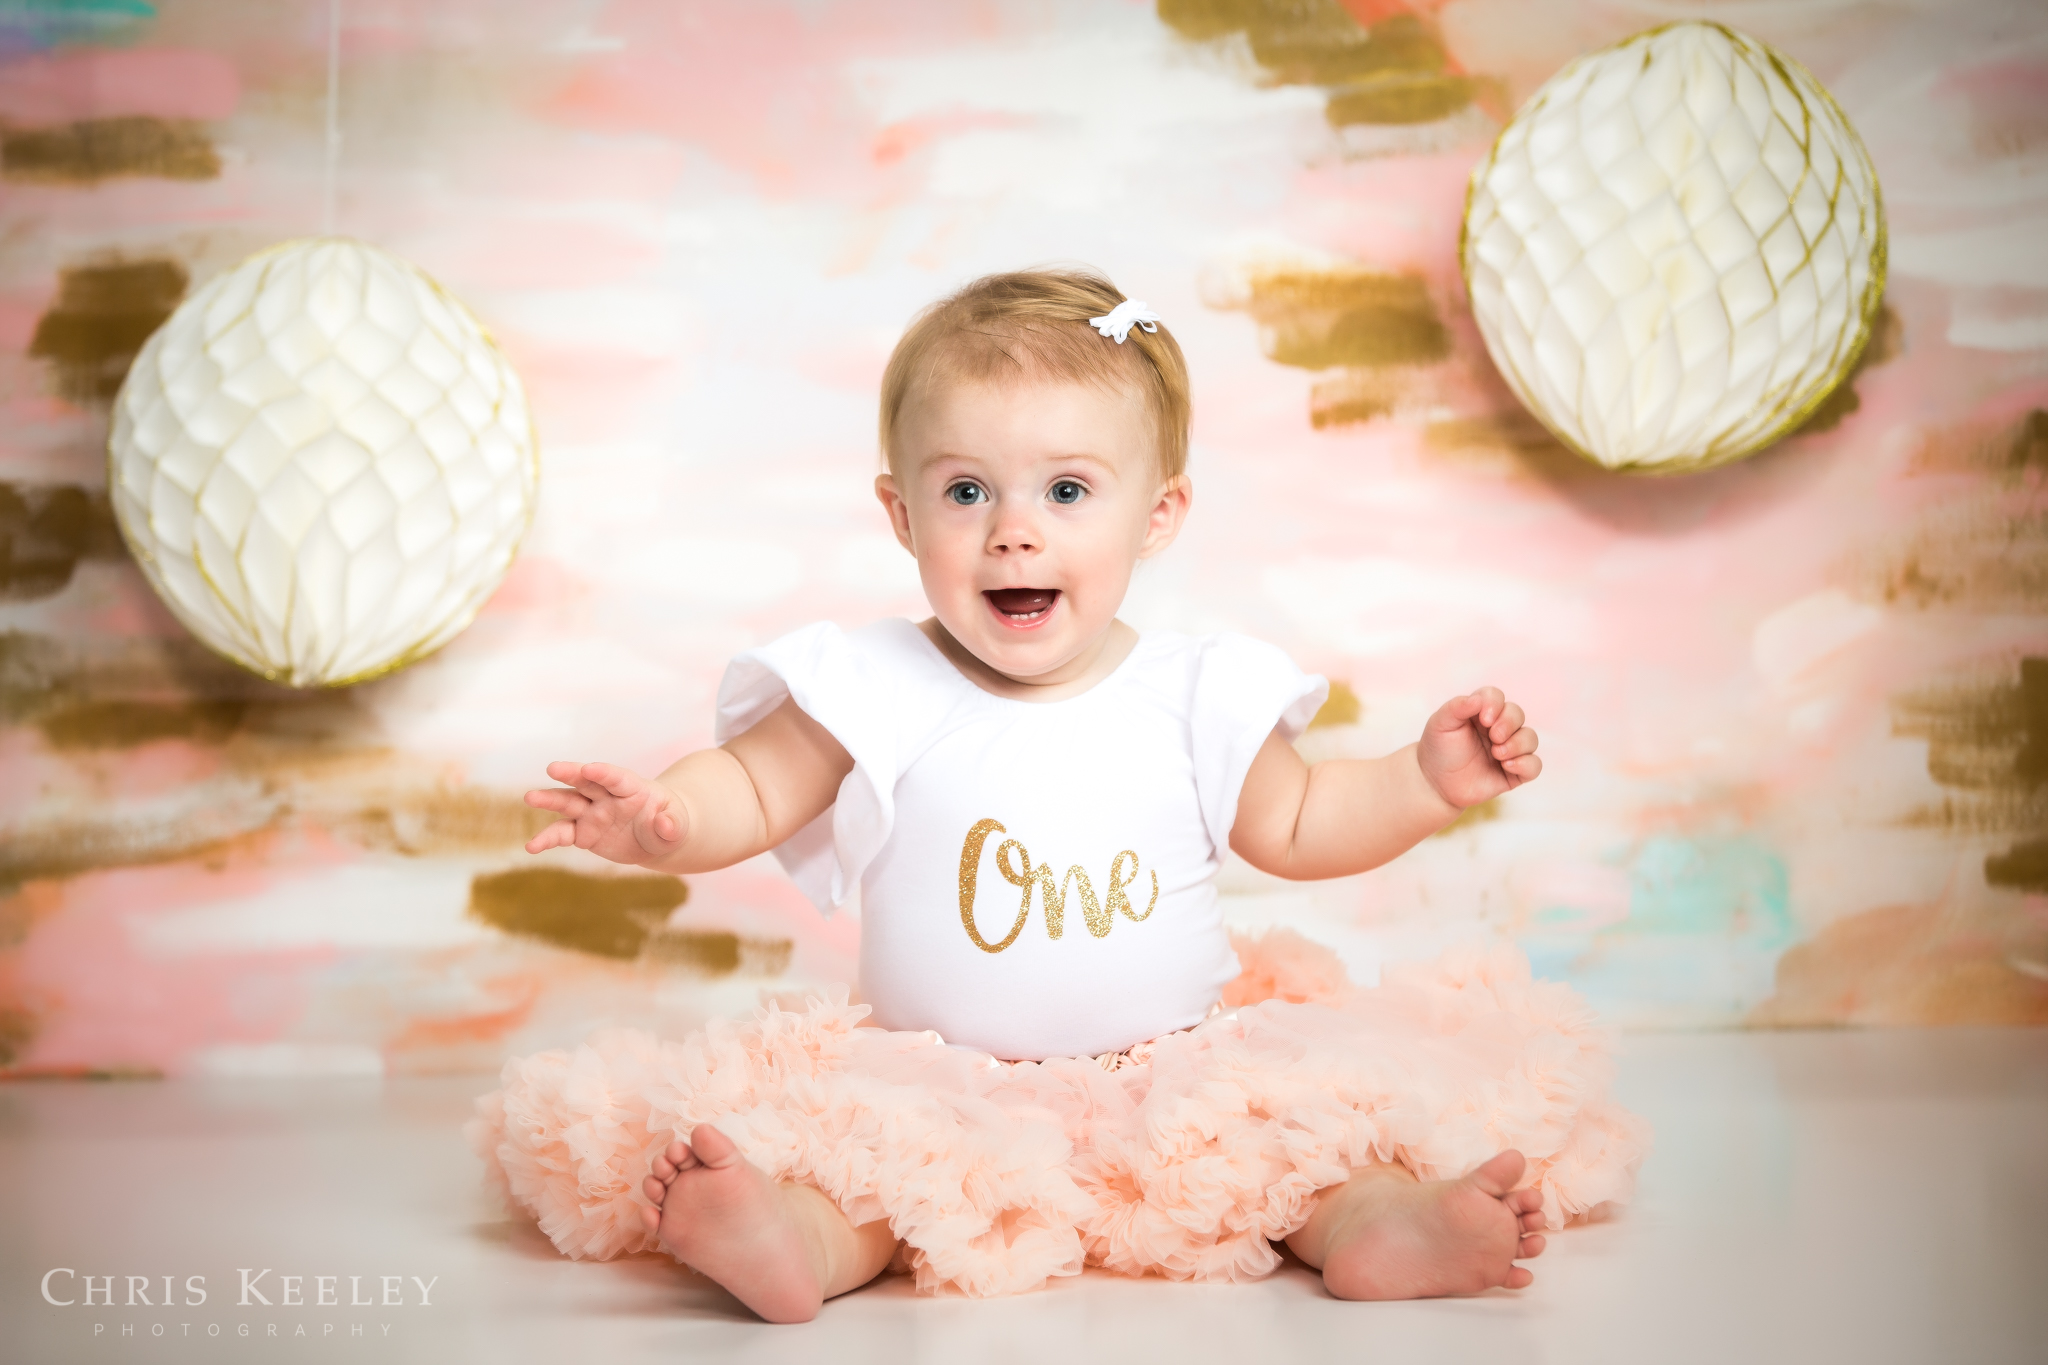 gwendolyn-one-year-cake-smash-dover-new-hampshire-photographer-01.jpg